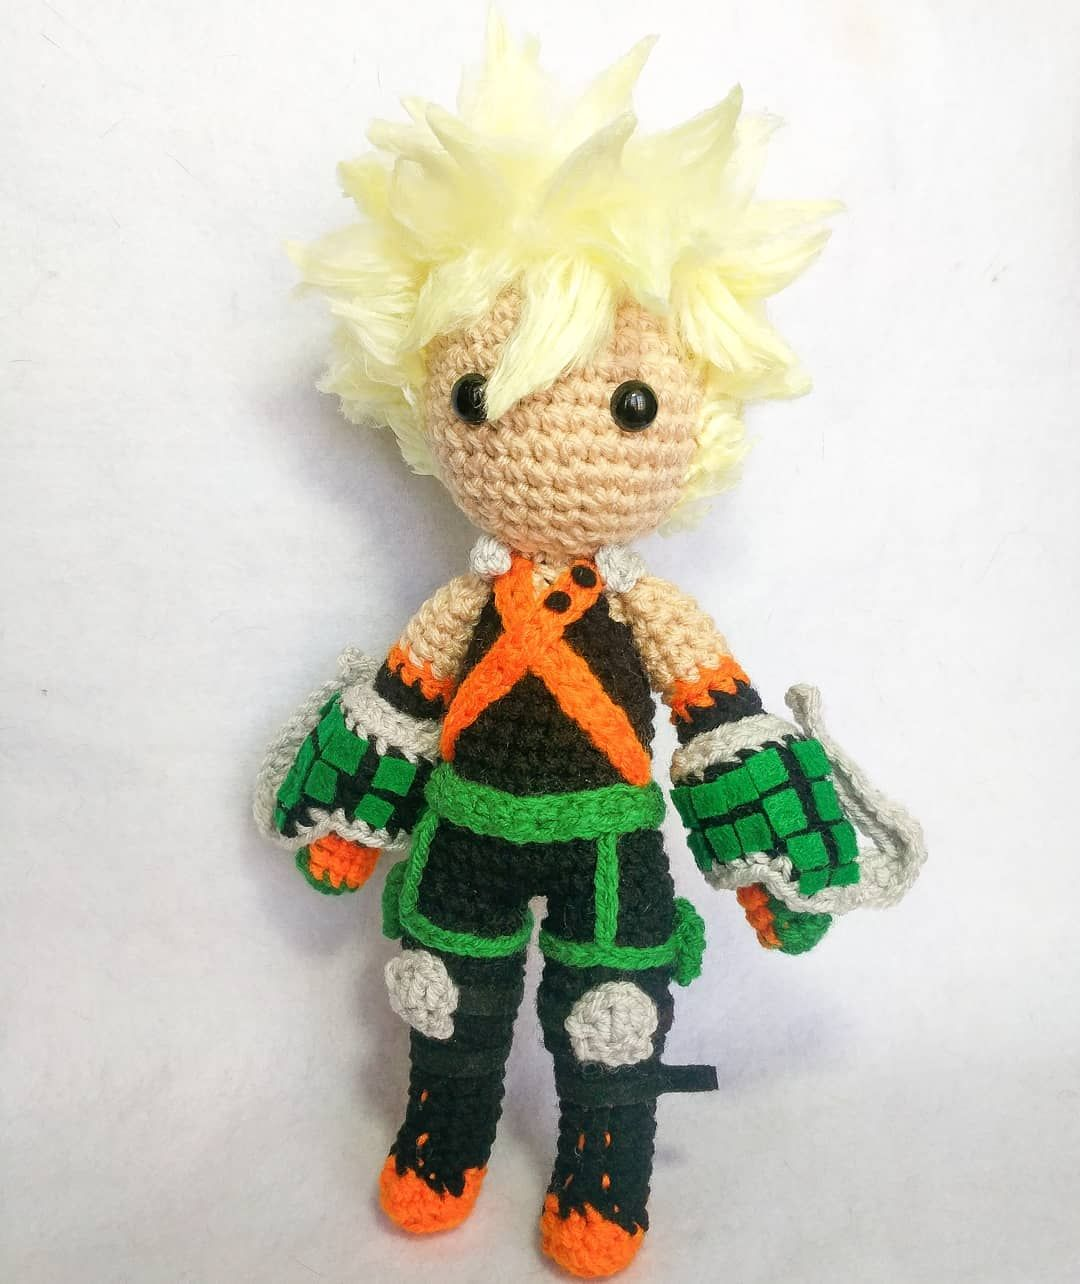 Amigurumi Crochet Anime Doll Tutorial Pattern Petite by Sylemn ... | 1284x1080